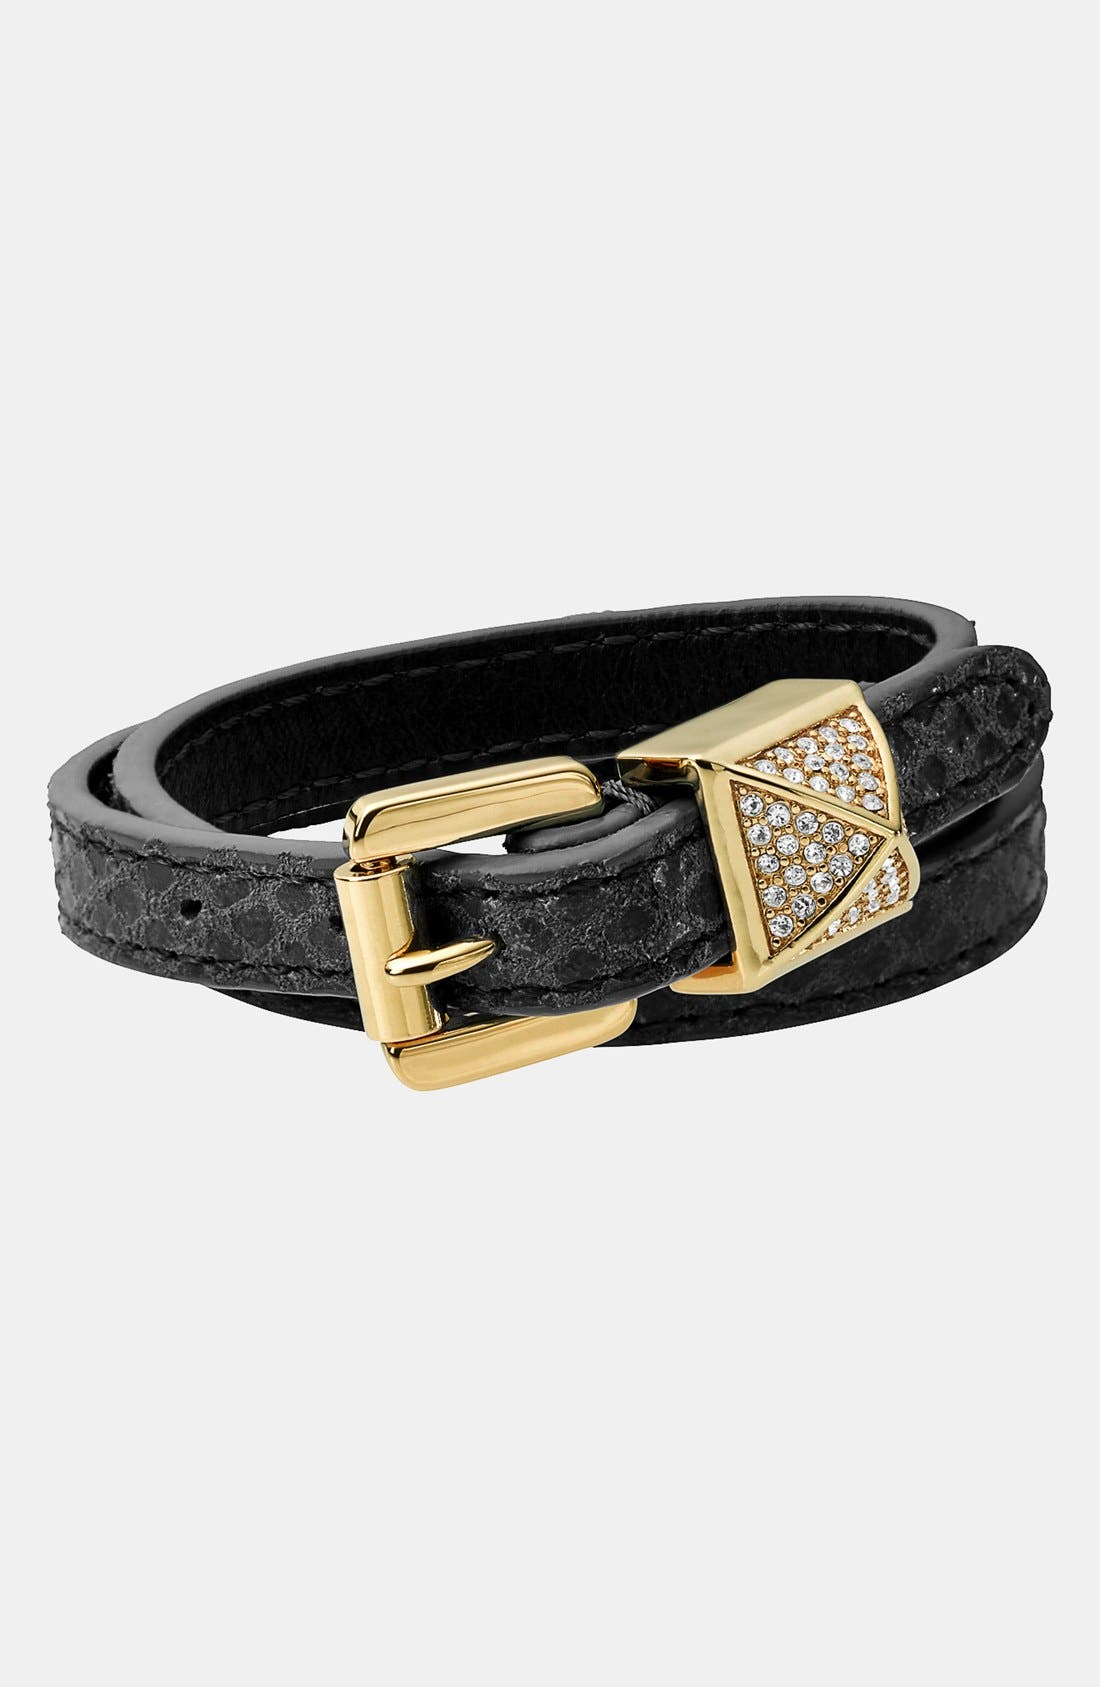 Main Image - Michael Kors 'Glam Rock' Leather Wrap Bracelet